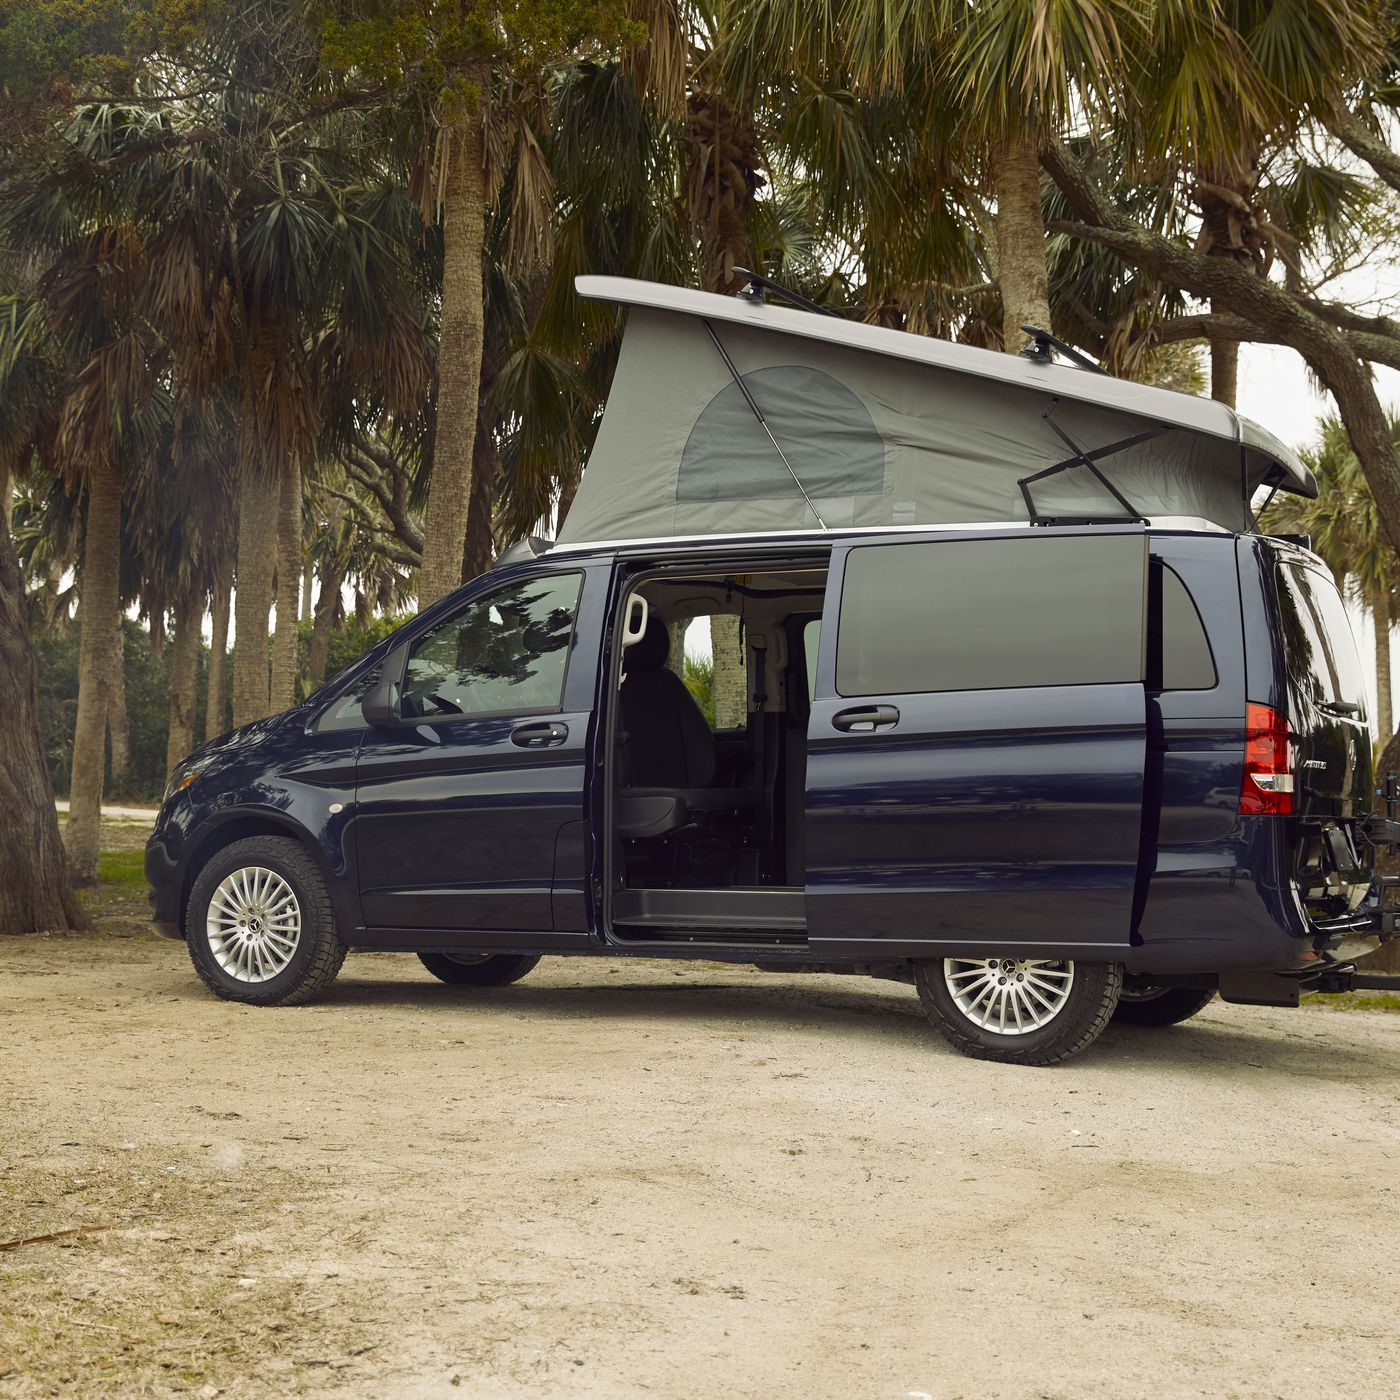 Camper Vans For Sale 5 Small Rvs To Buy Now Curbed